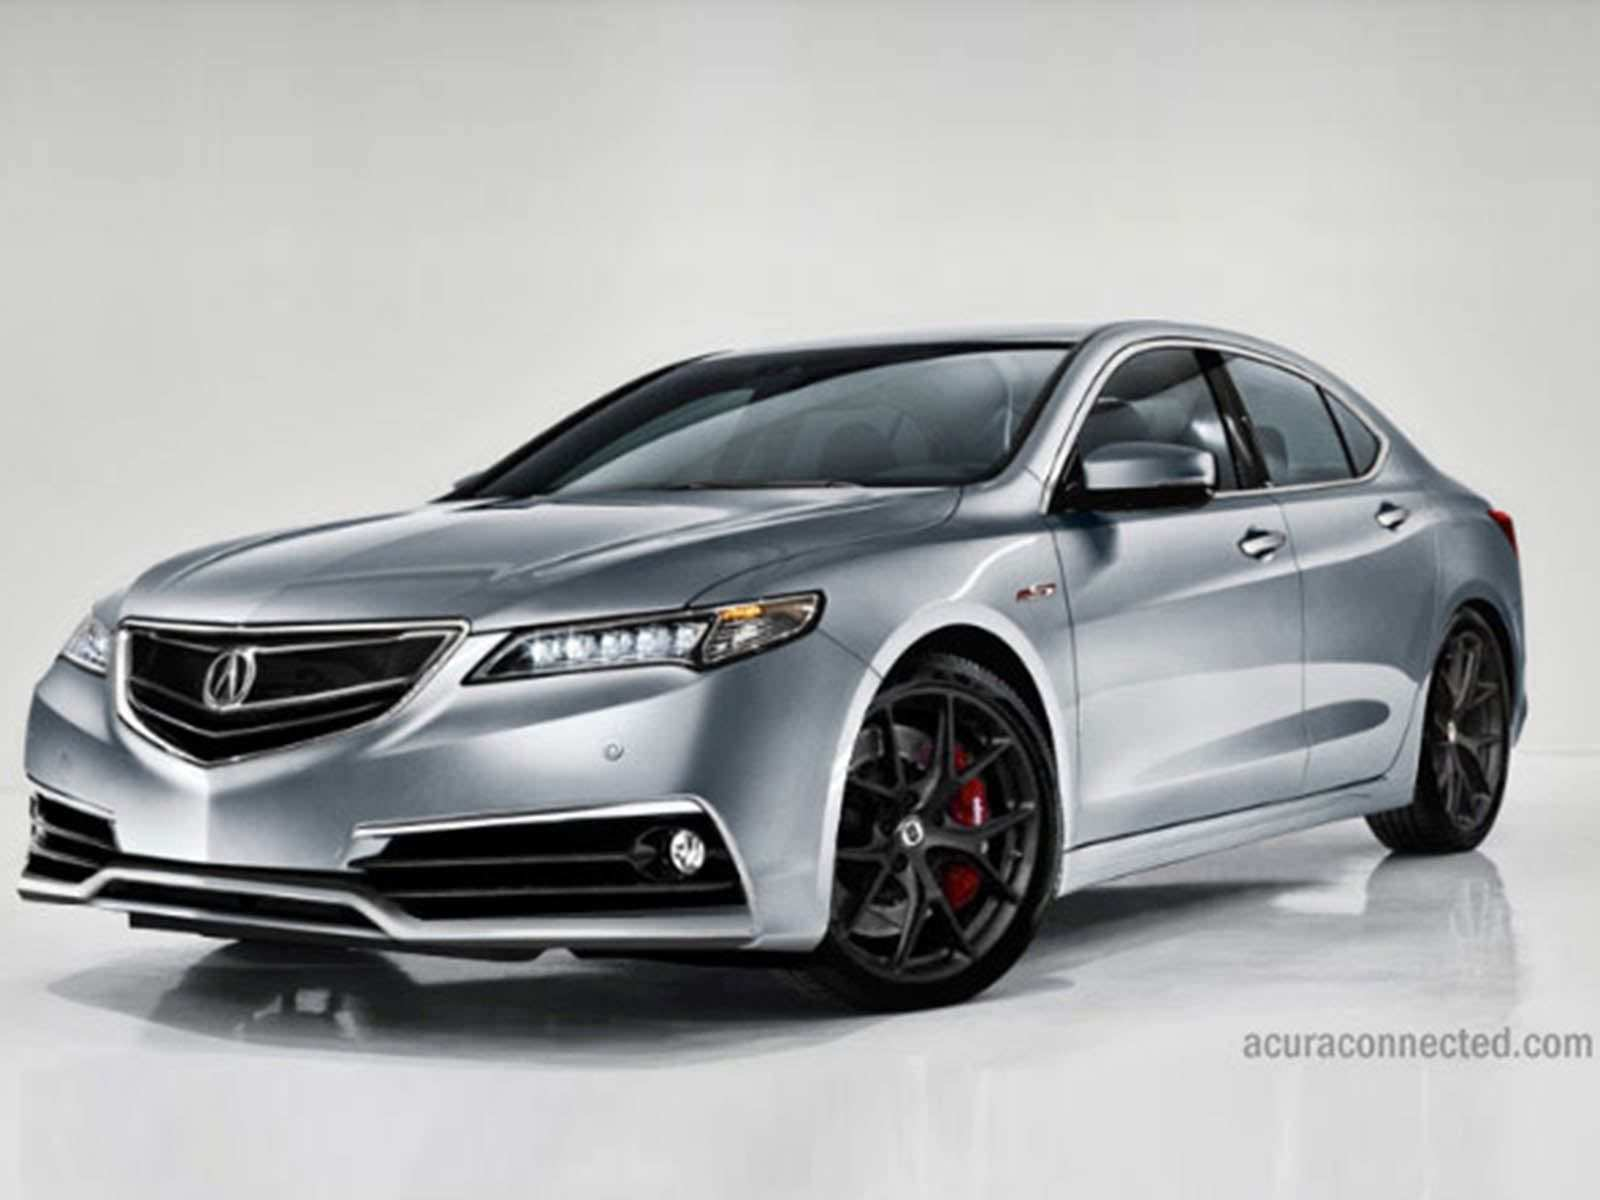 43 All New 2019 Acura Tl First Drive